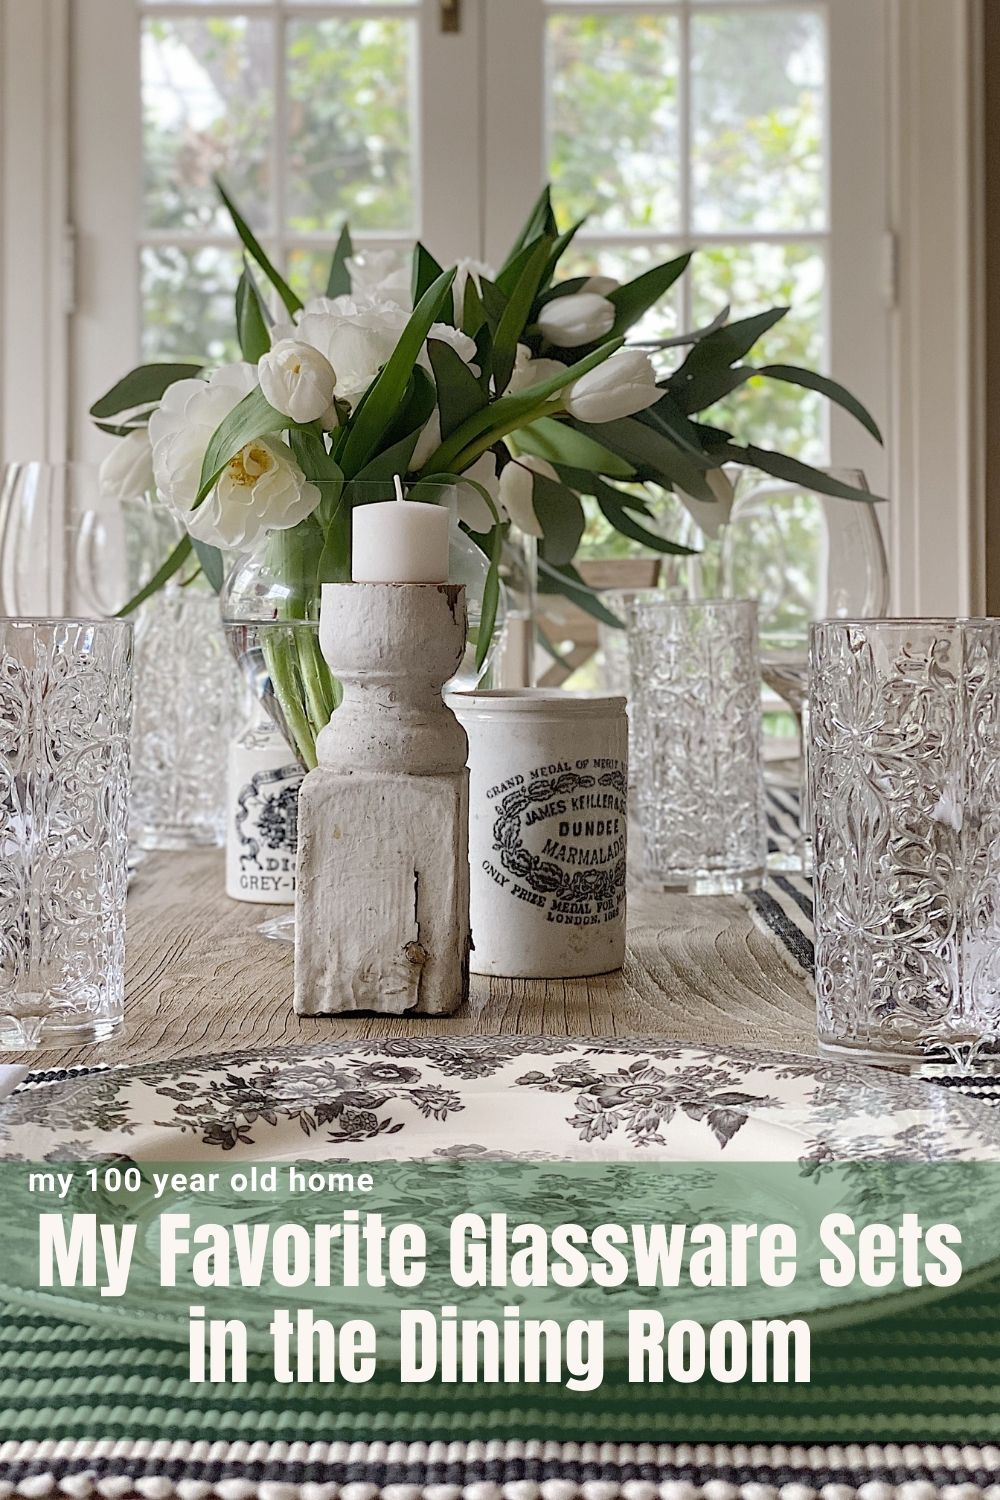 Today we styled the Dining Room and I shared some amazing Glassware Sets. I love the crystal style and how these glasses catch the light.